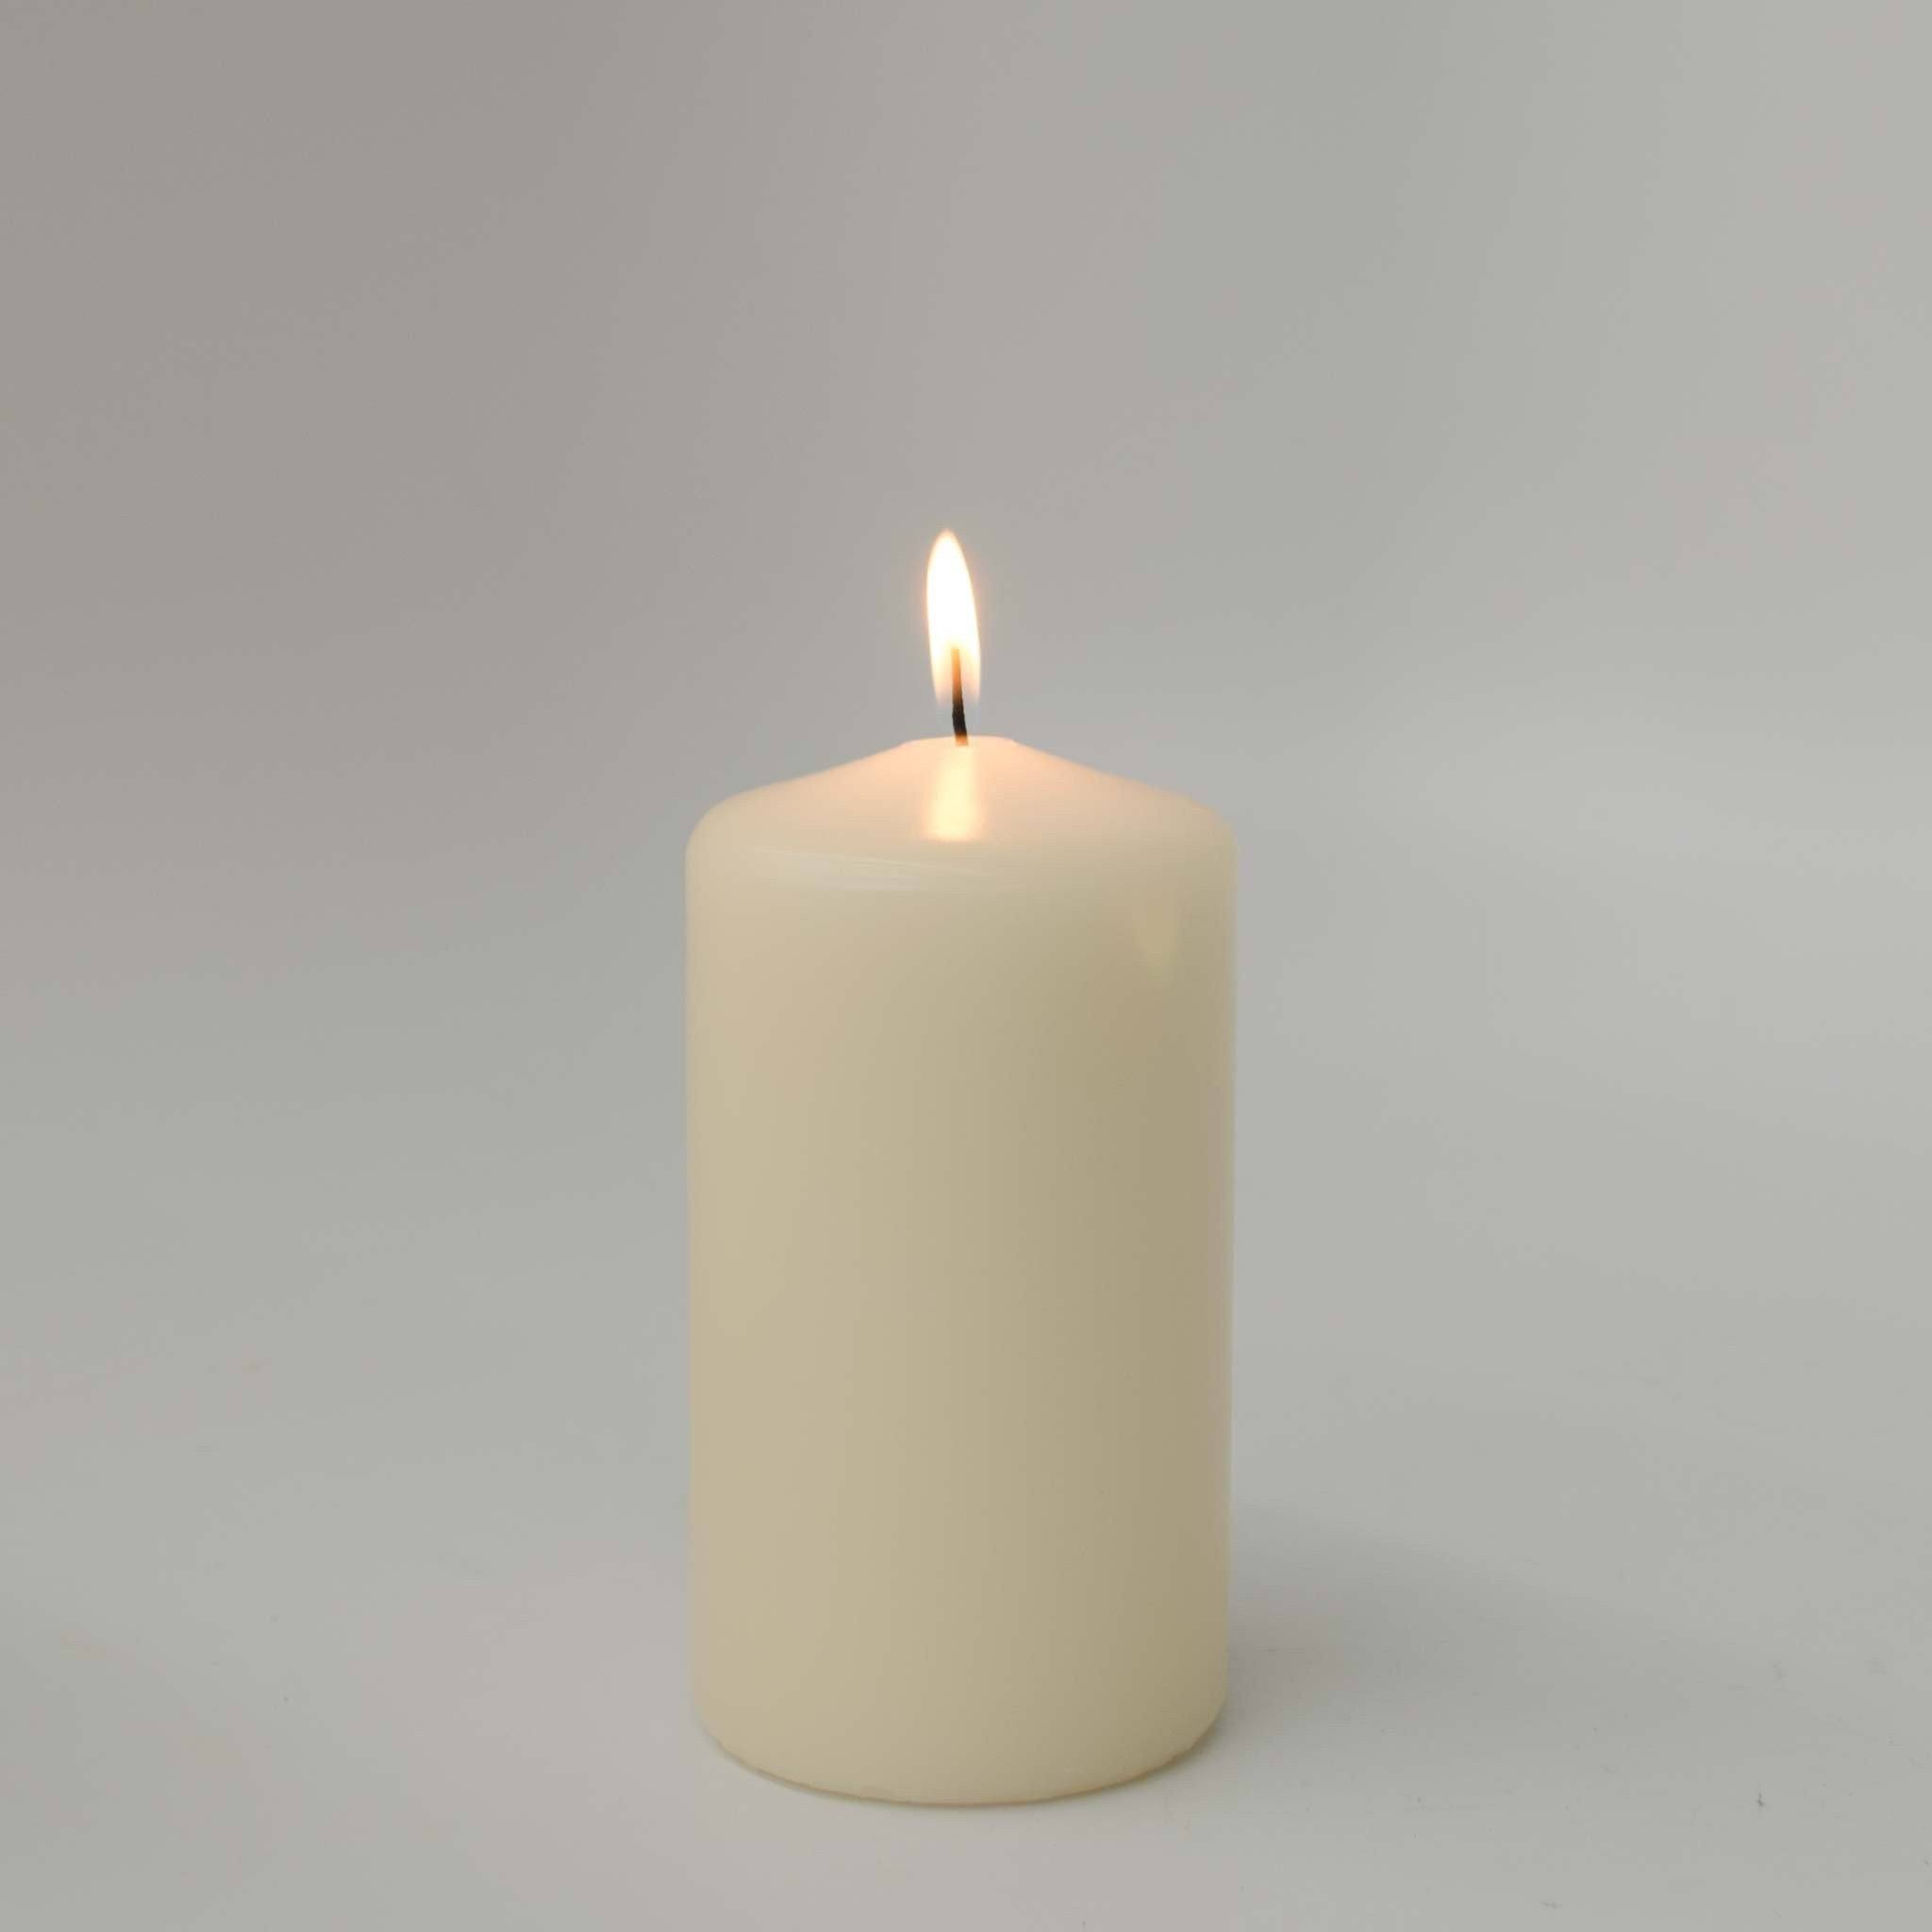 3x5 Ivory Pillar Candle (Case of 6) - WeddingCandles.com